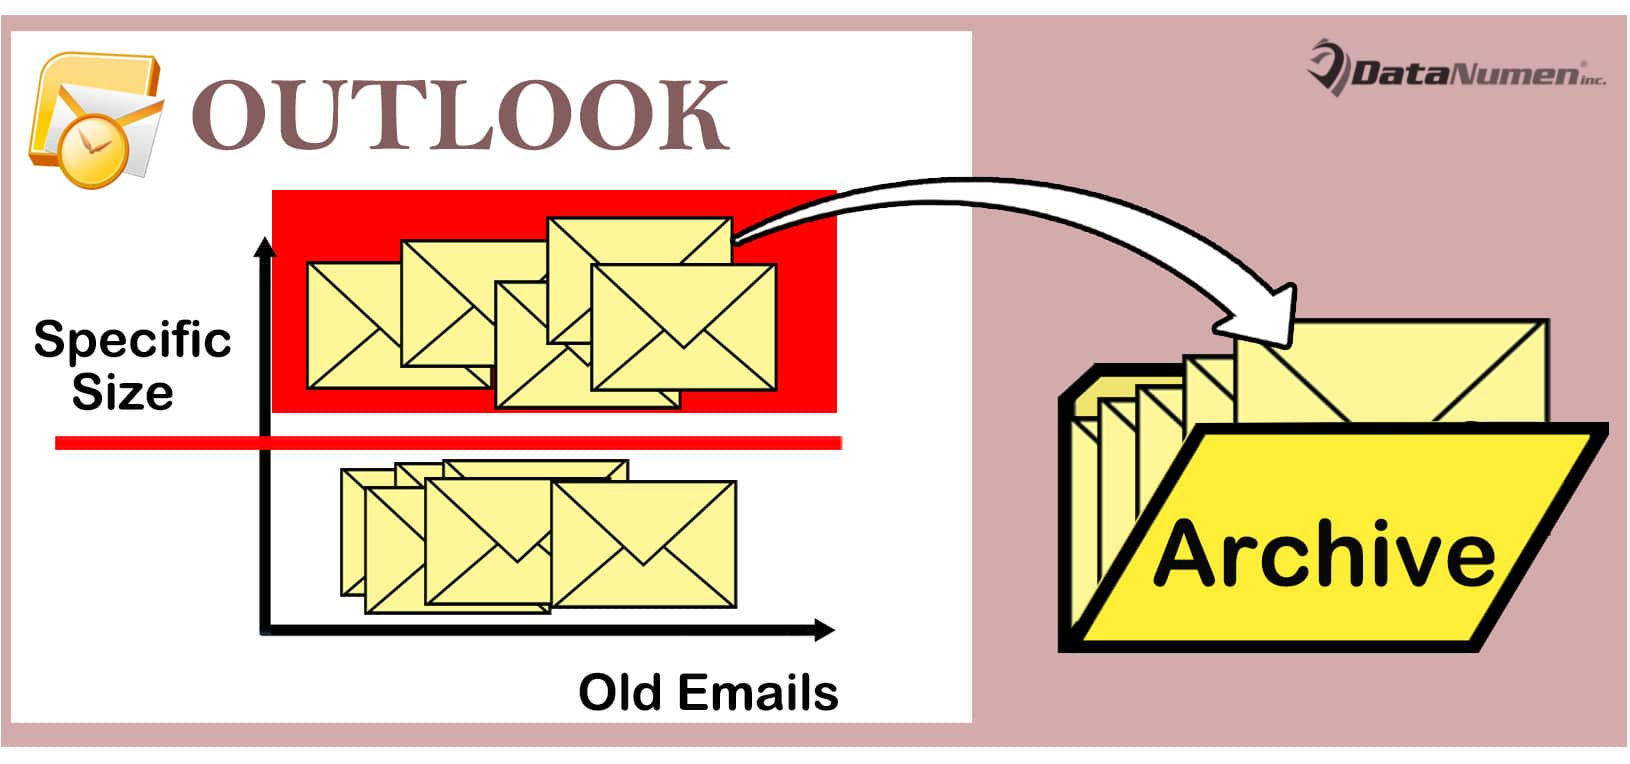 Auto Archive Old Emails Larger Than a Specific Size in Outlook